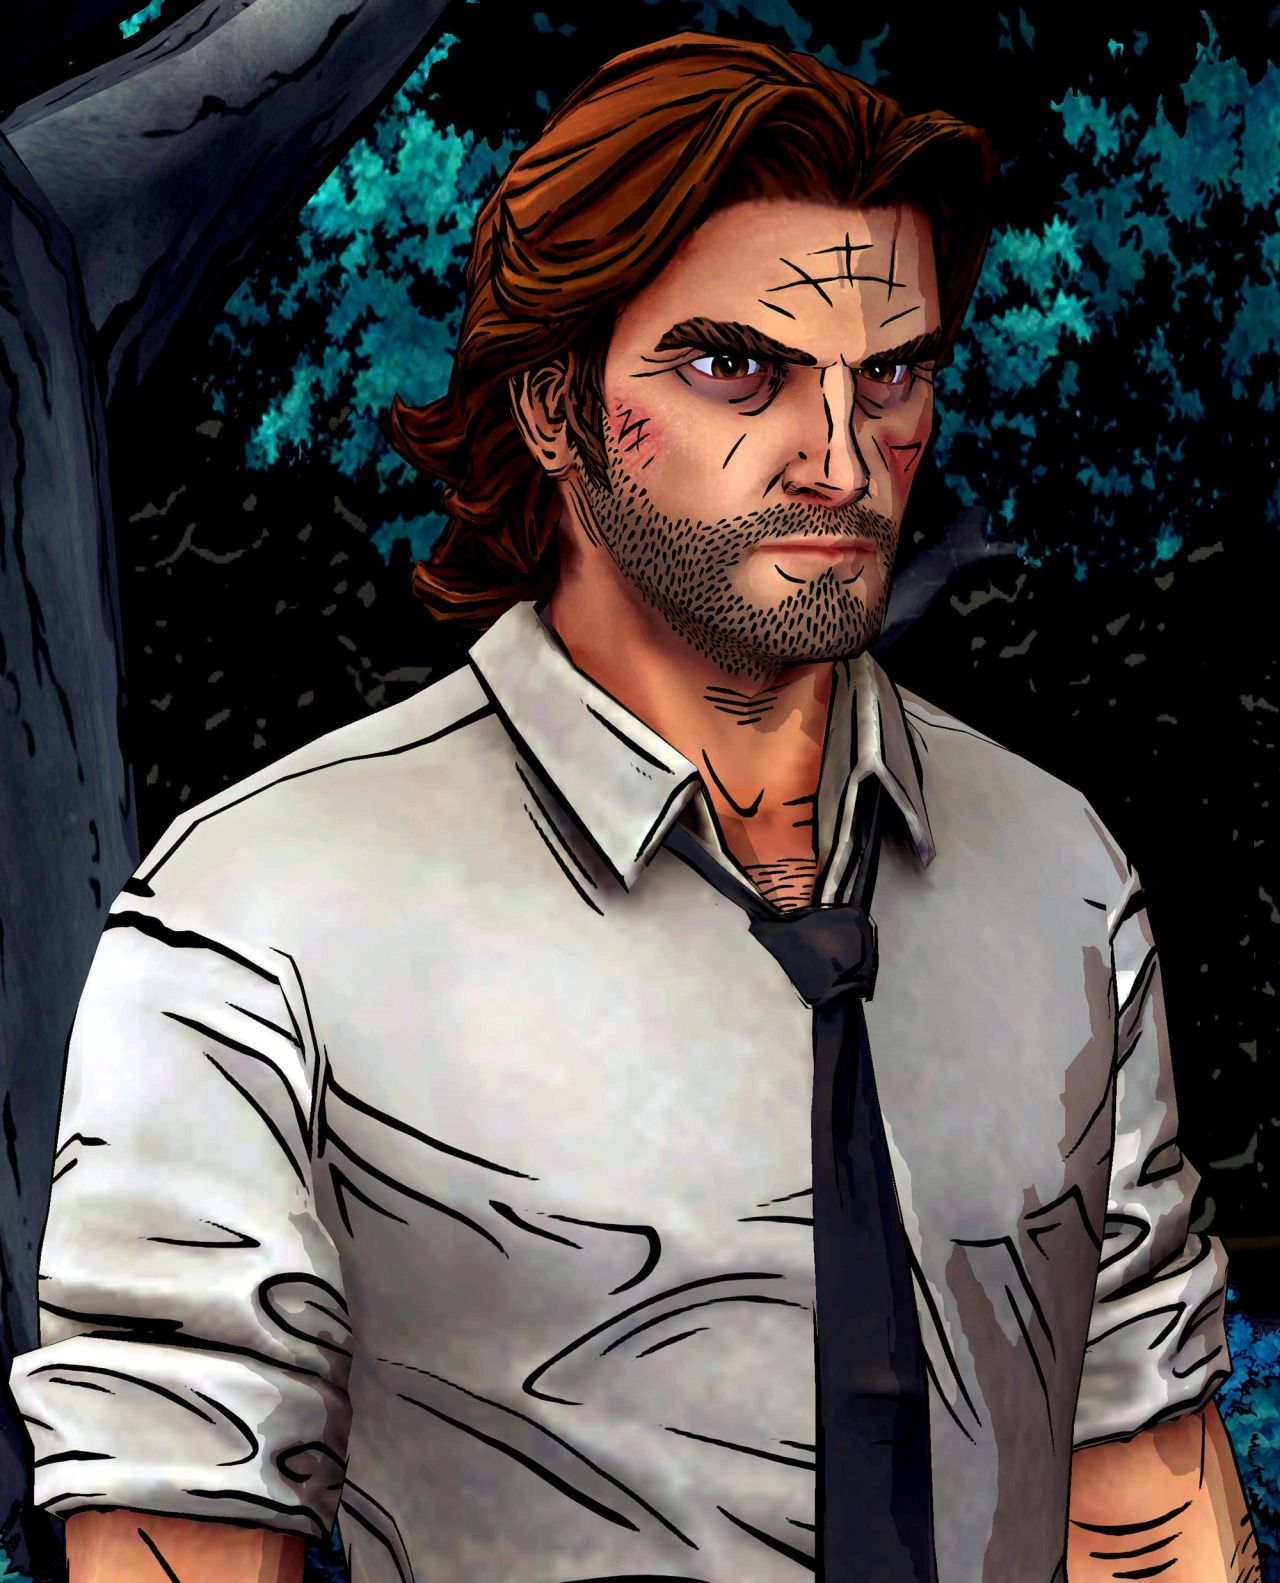 The Wolf Among Us Game City Building I Wallpaper 1920x1088 169433 Wallpaperup